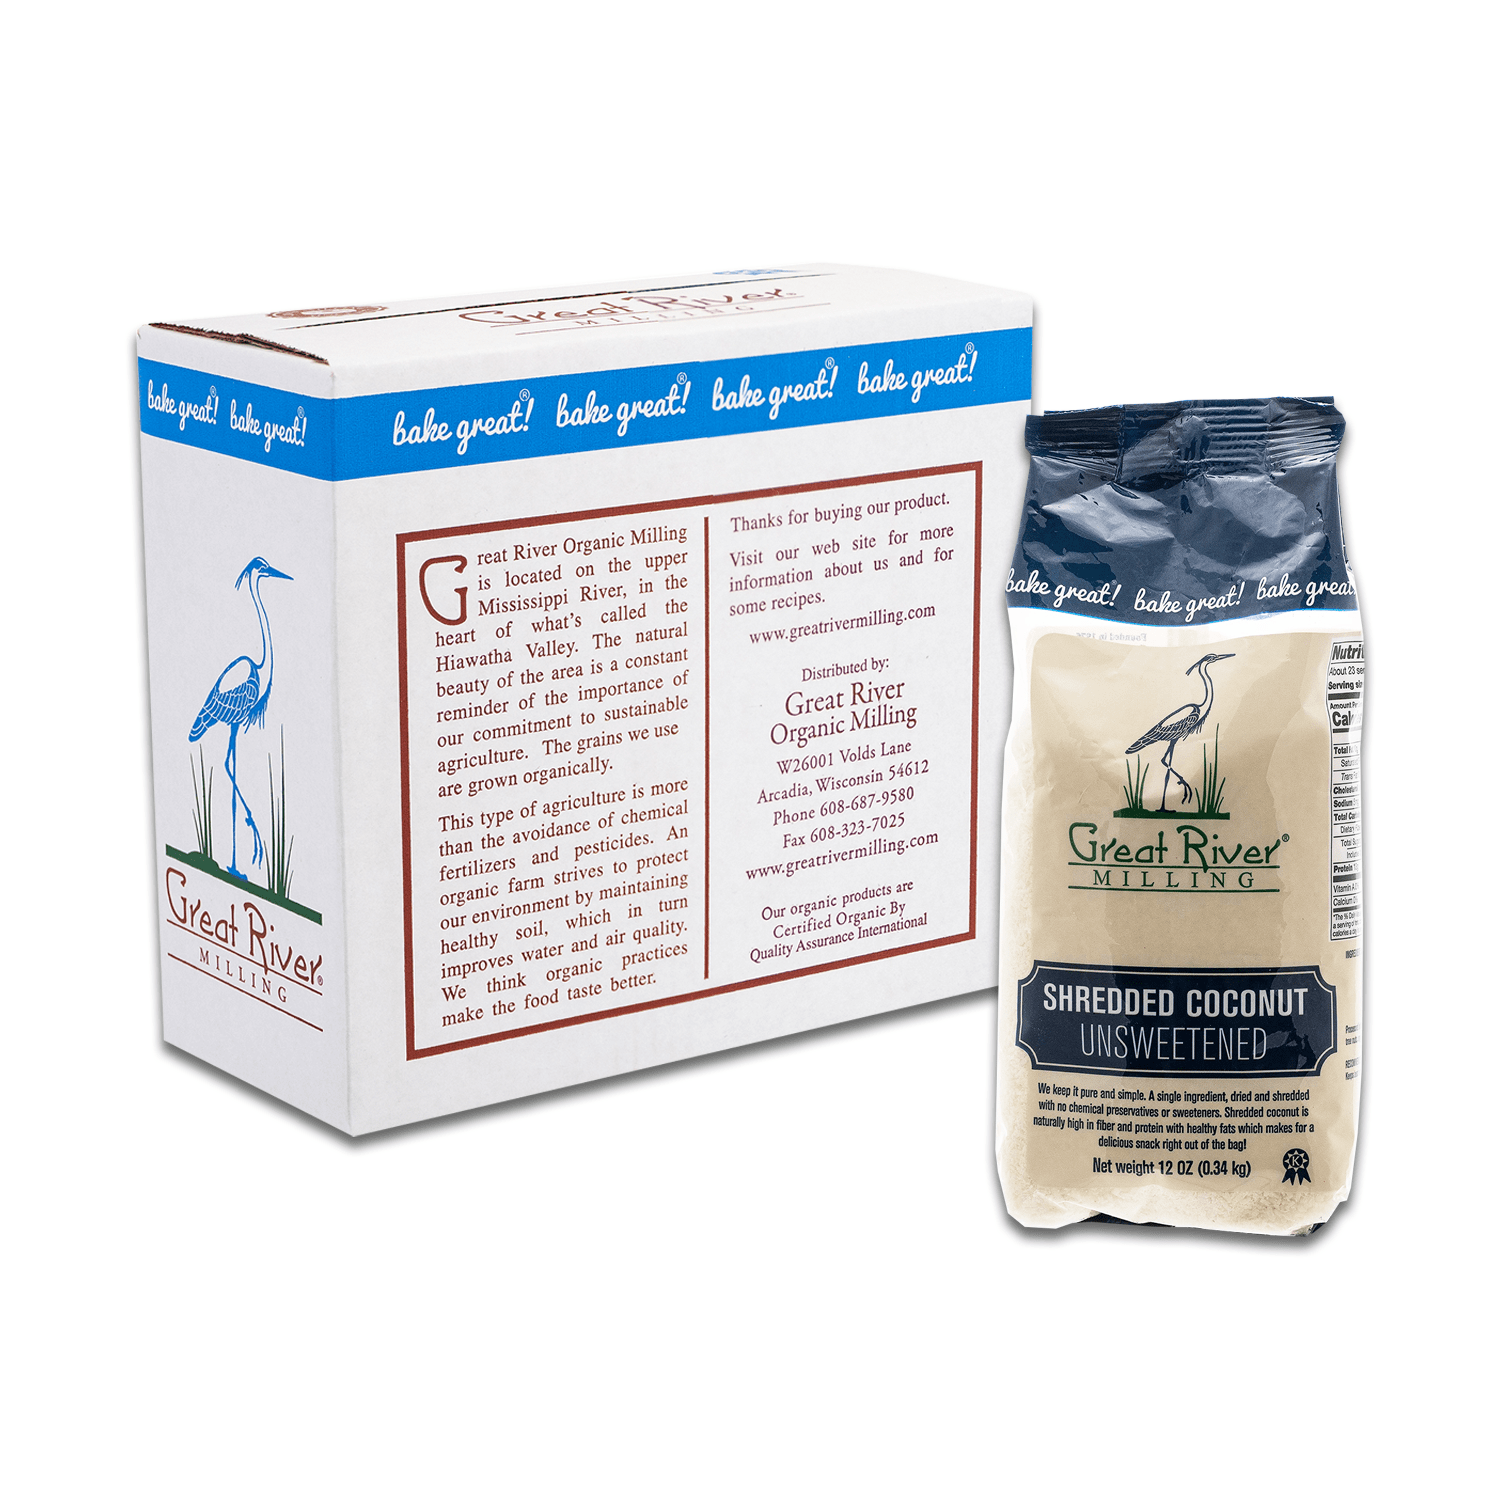 Great River Milling Shredded Coconut Case Sealed